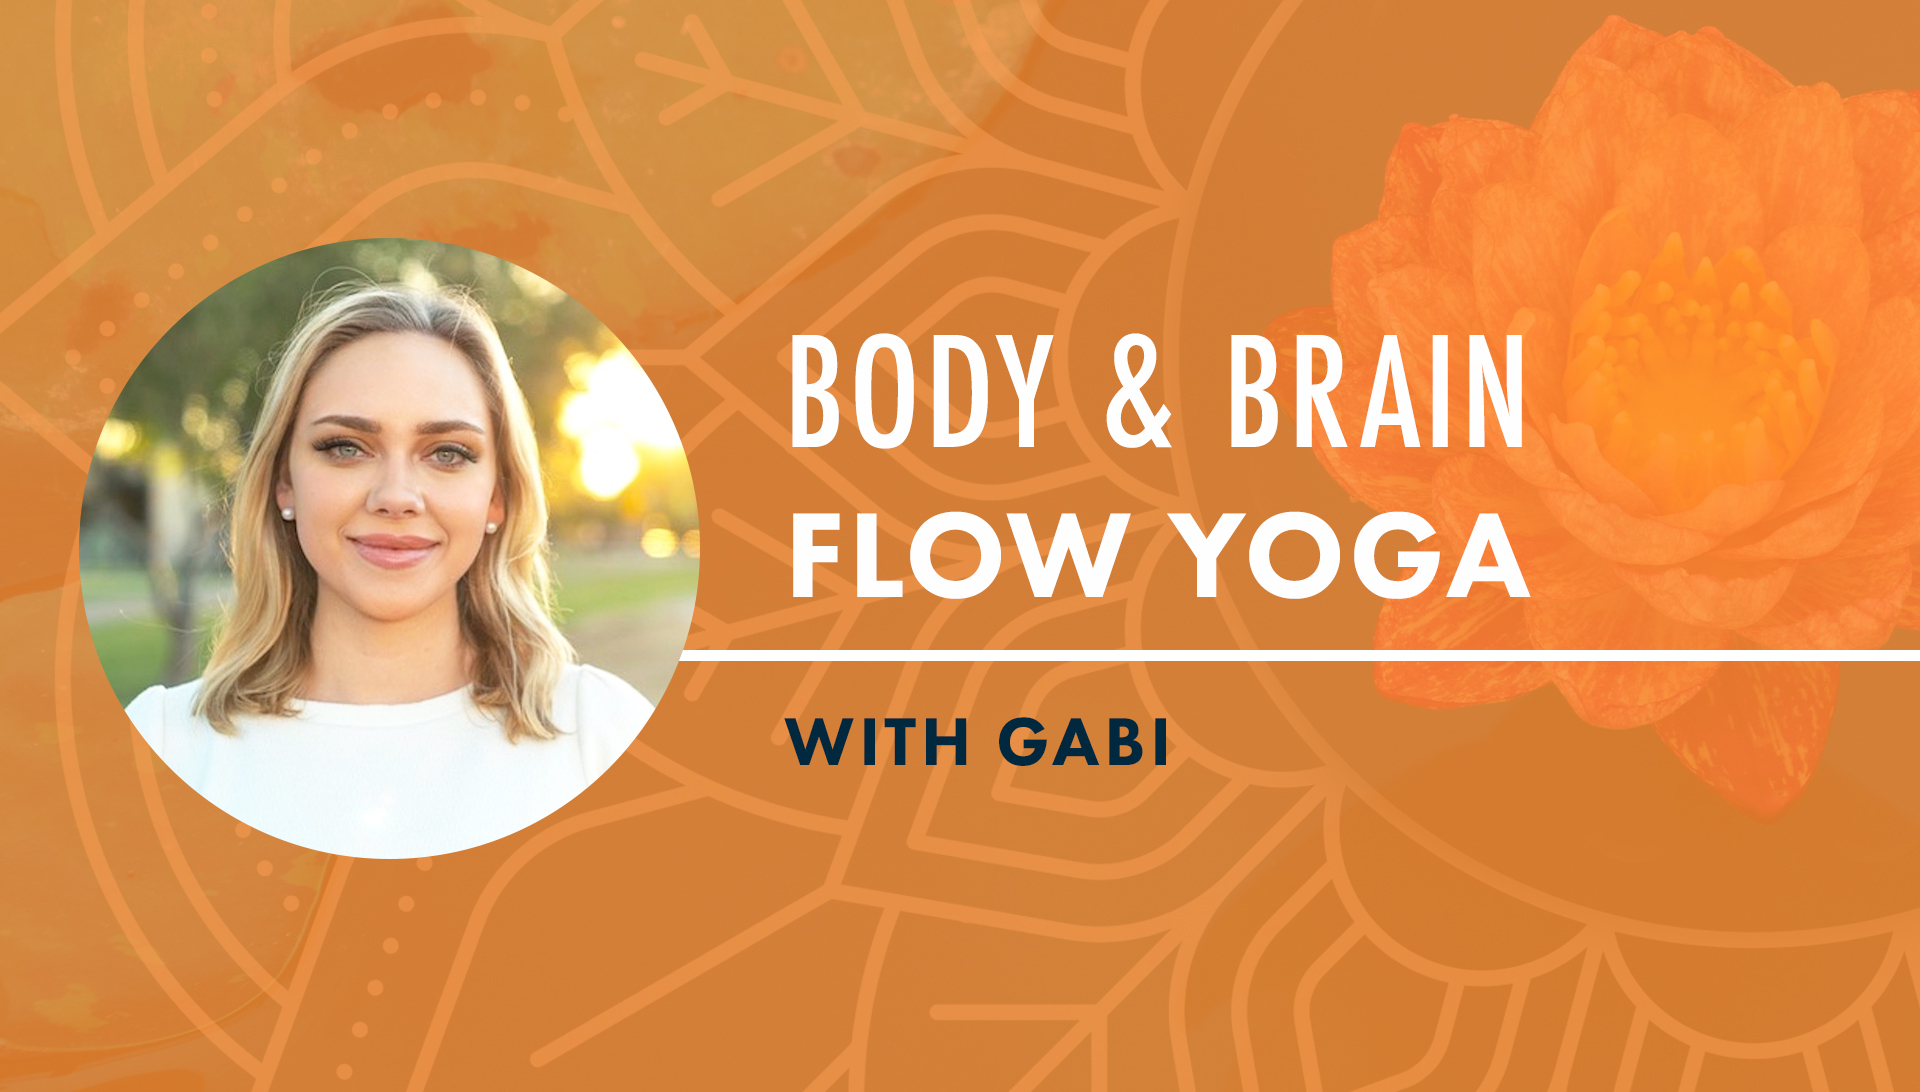 Body Brain Yoga Flow with Gabi